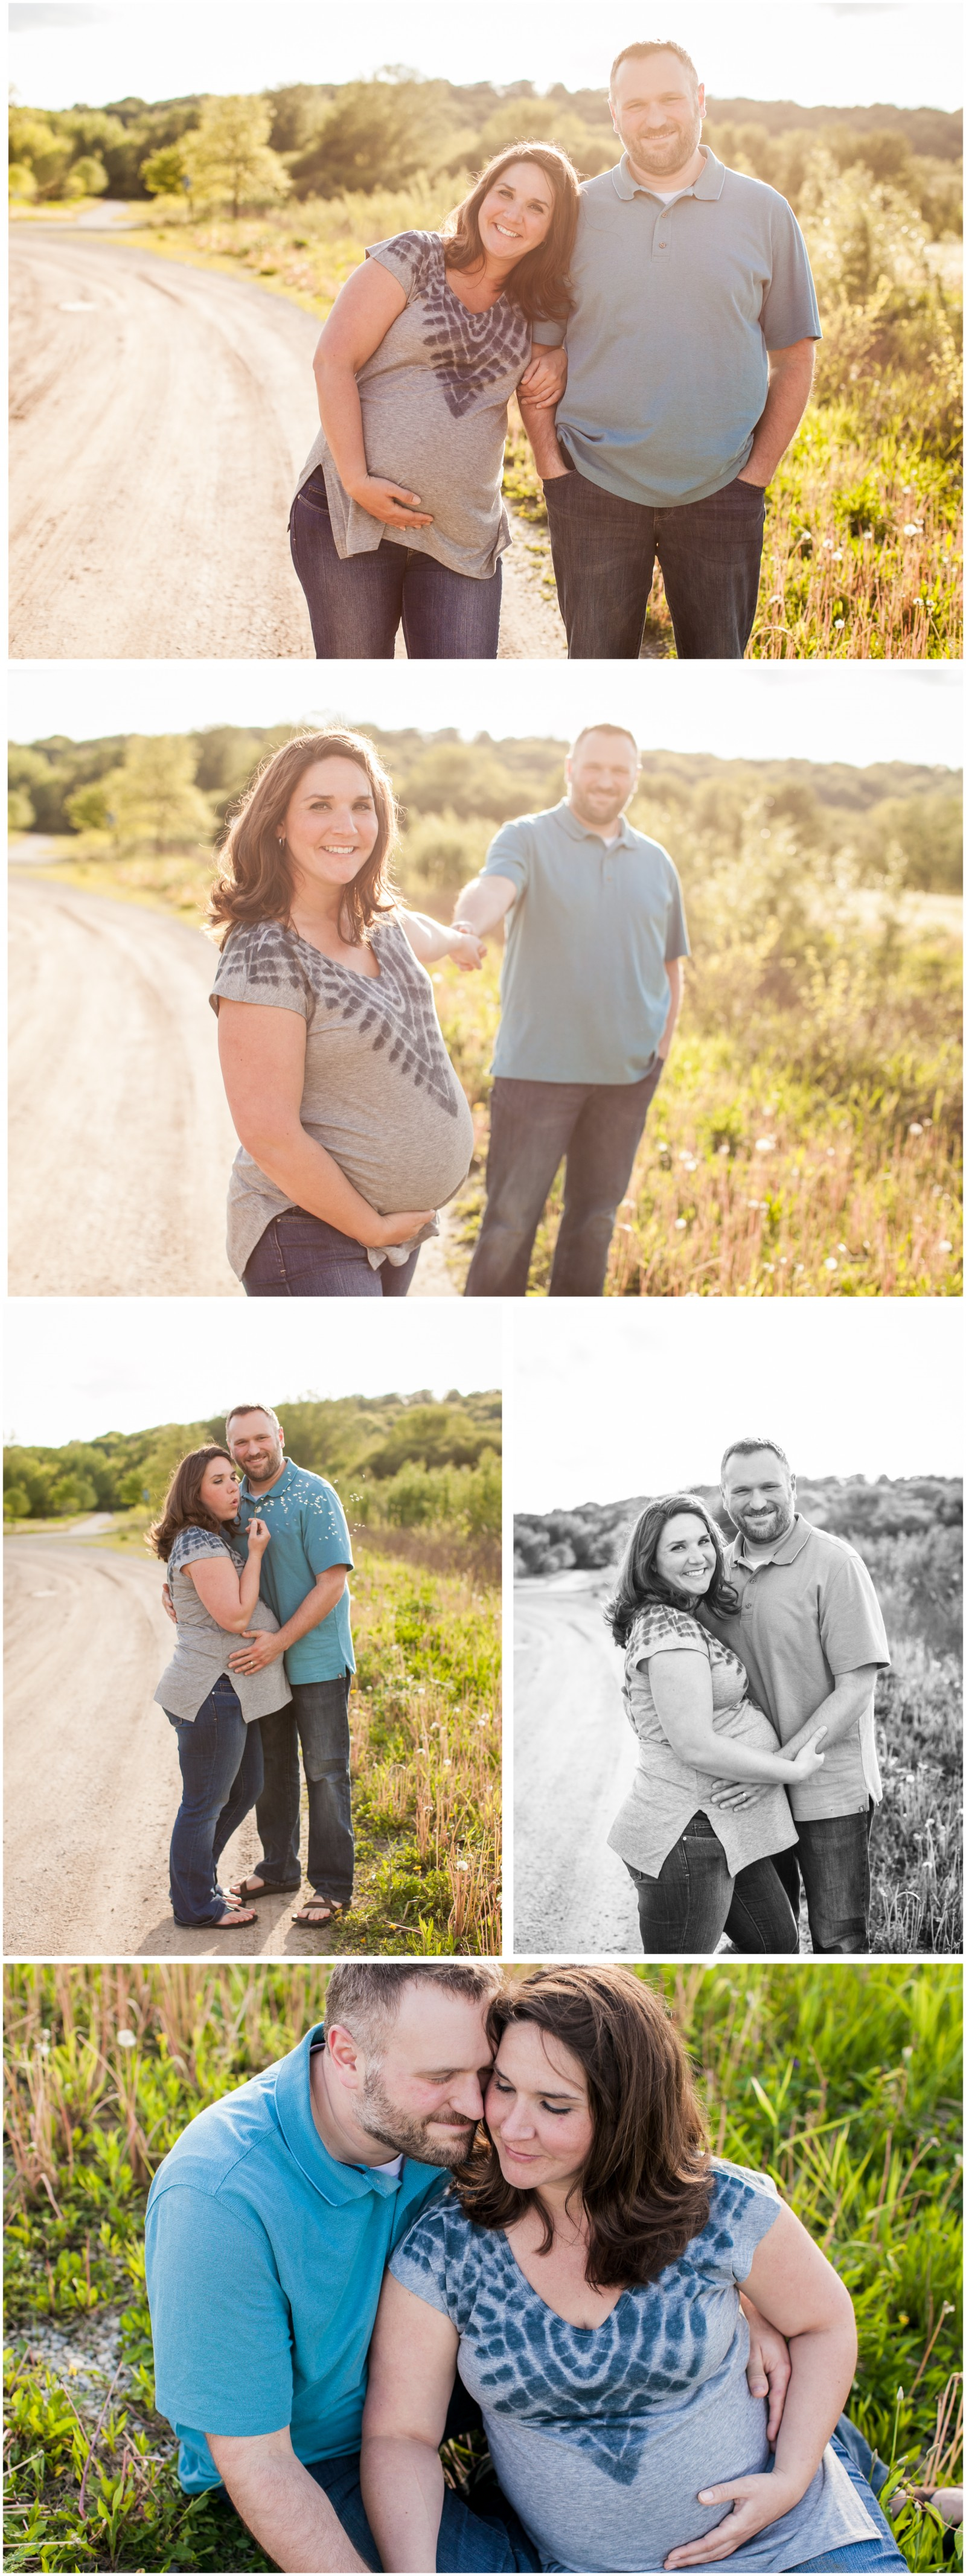 Maternity Session Lafayette Indiana Pearl Photo & Design 2